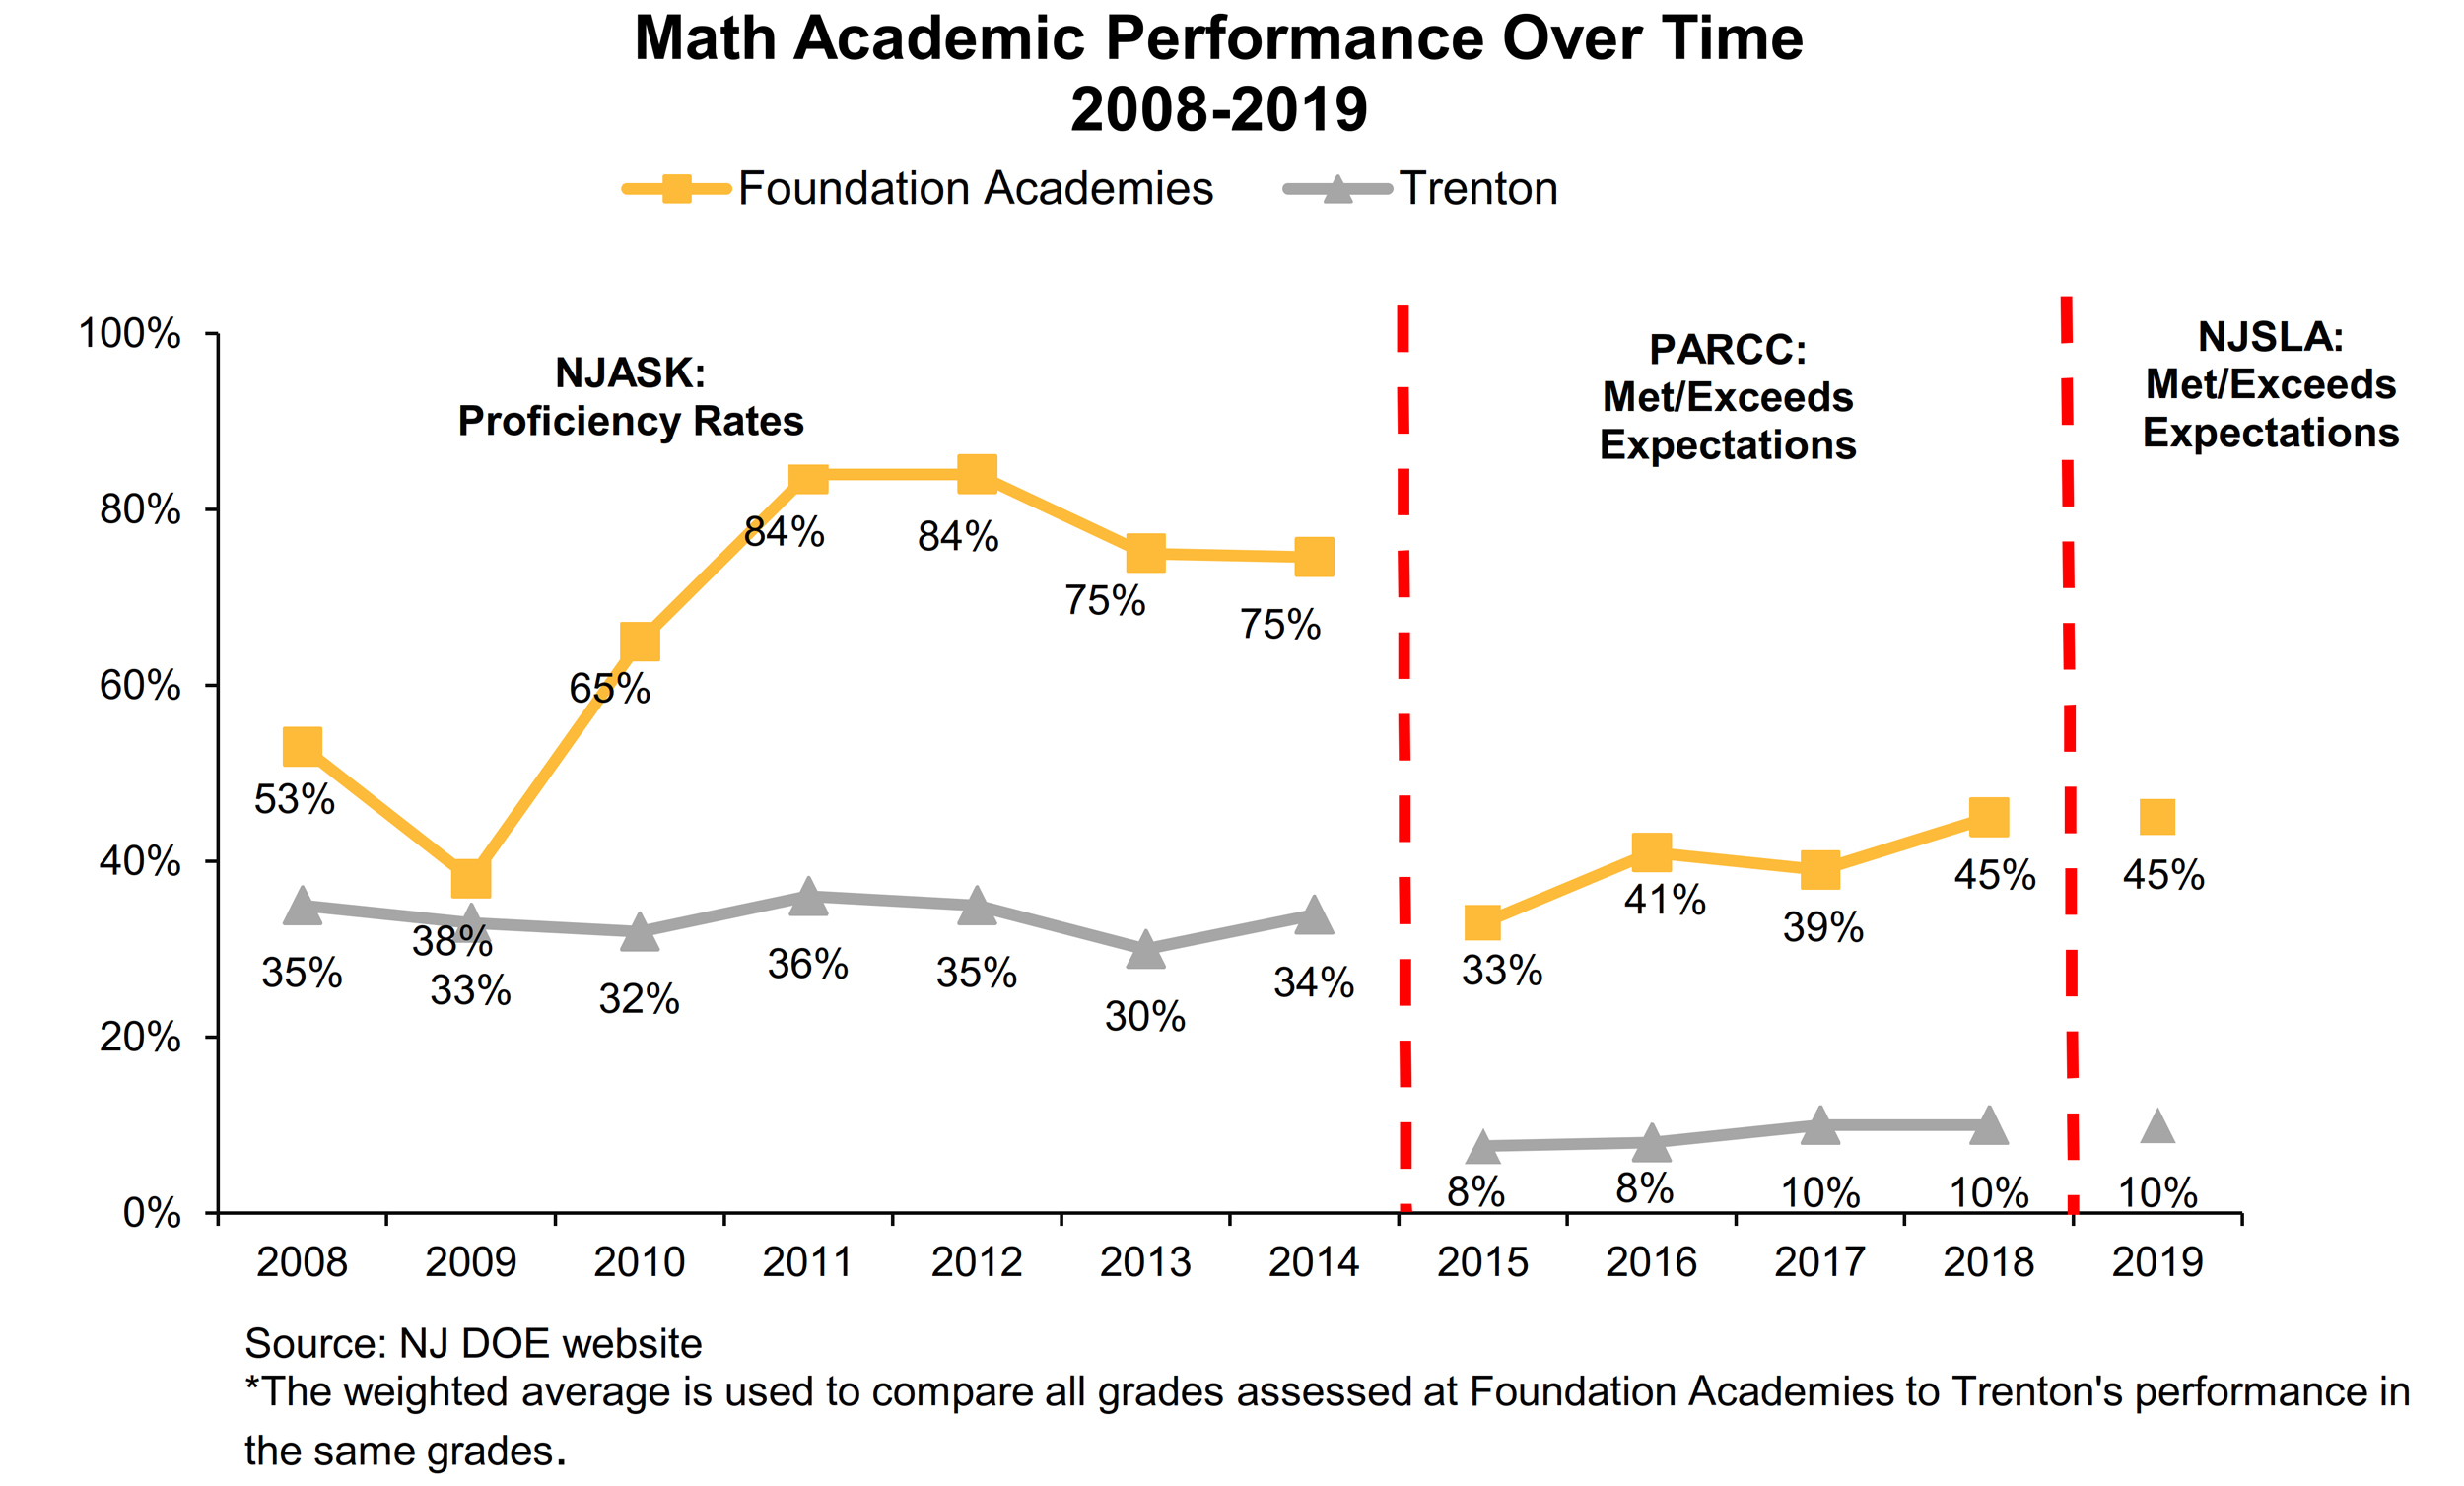 2008-2019 Math Academic Performance Over Time: Comparing Trenton to Foundation Academies